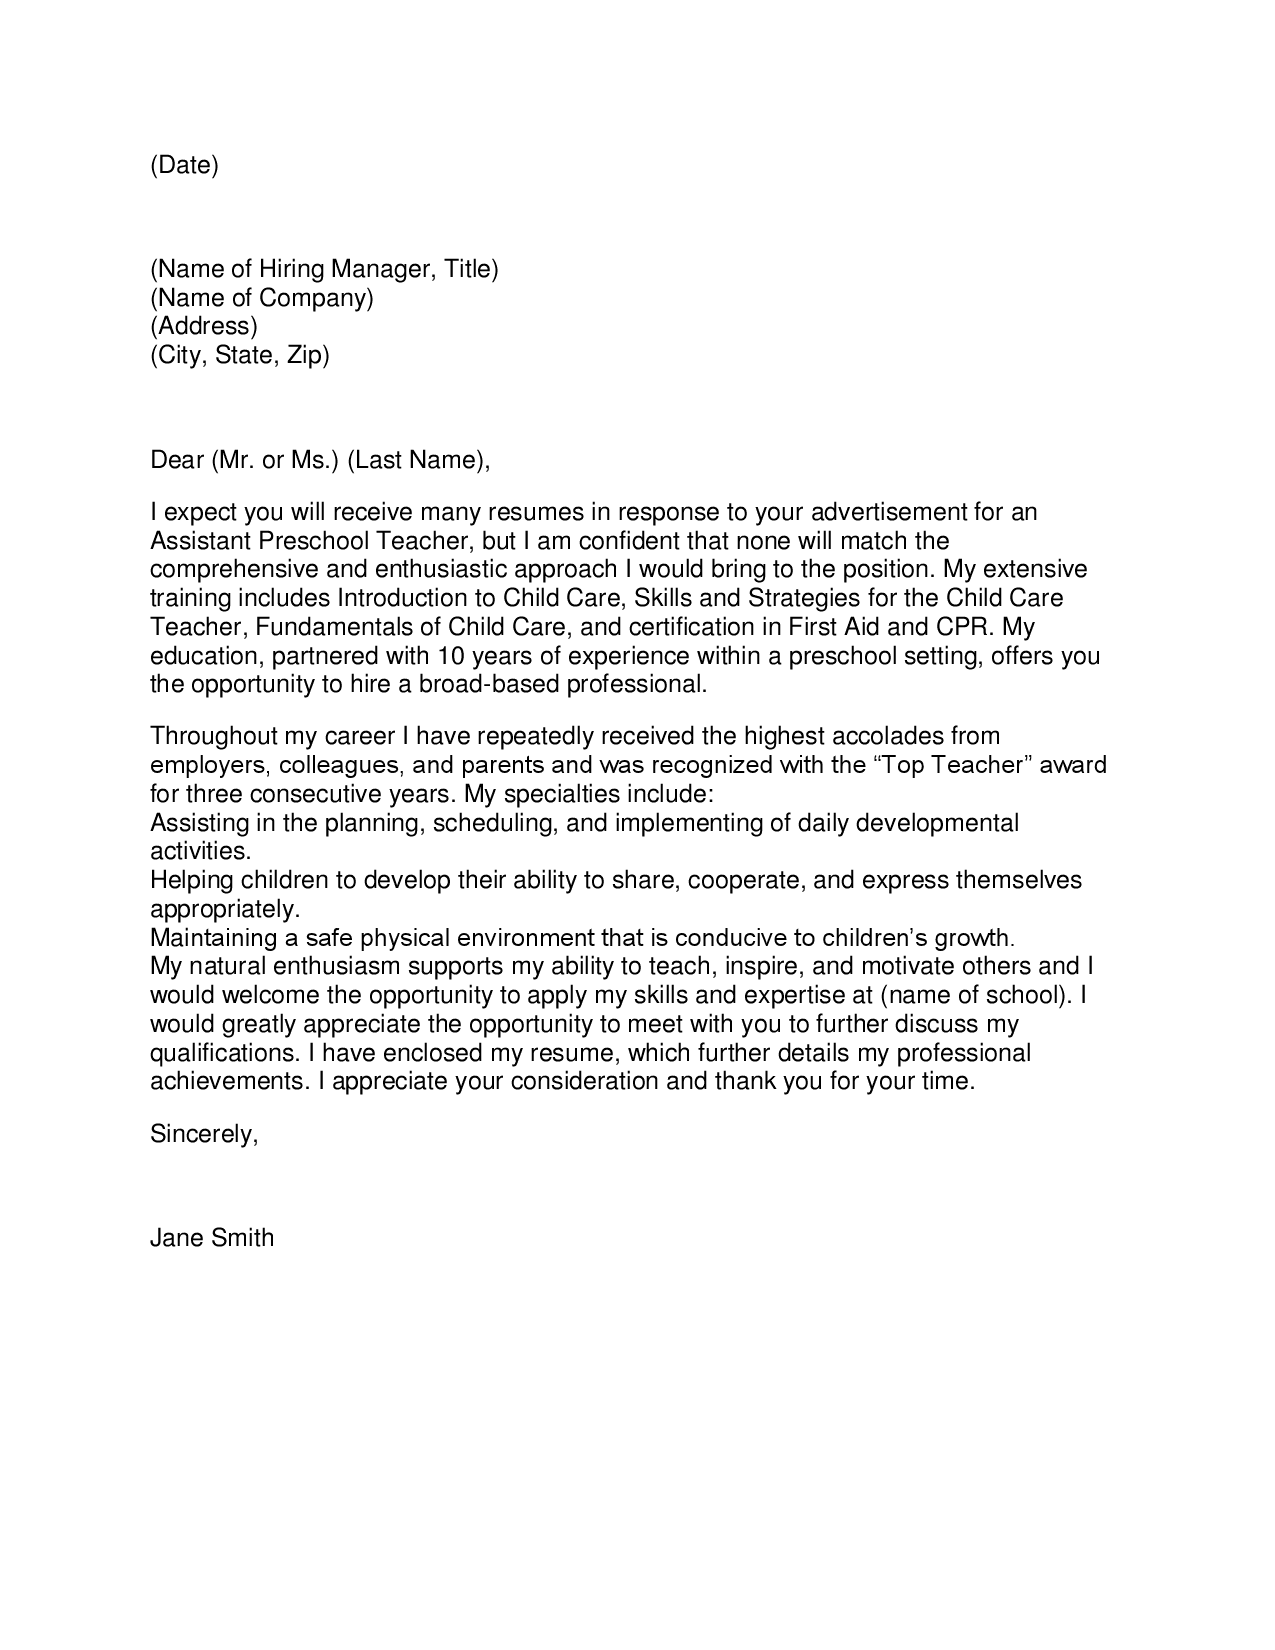 Cover Letter Sample Doc from workalpha.com